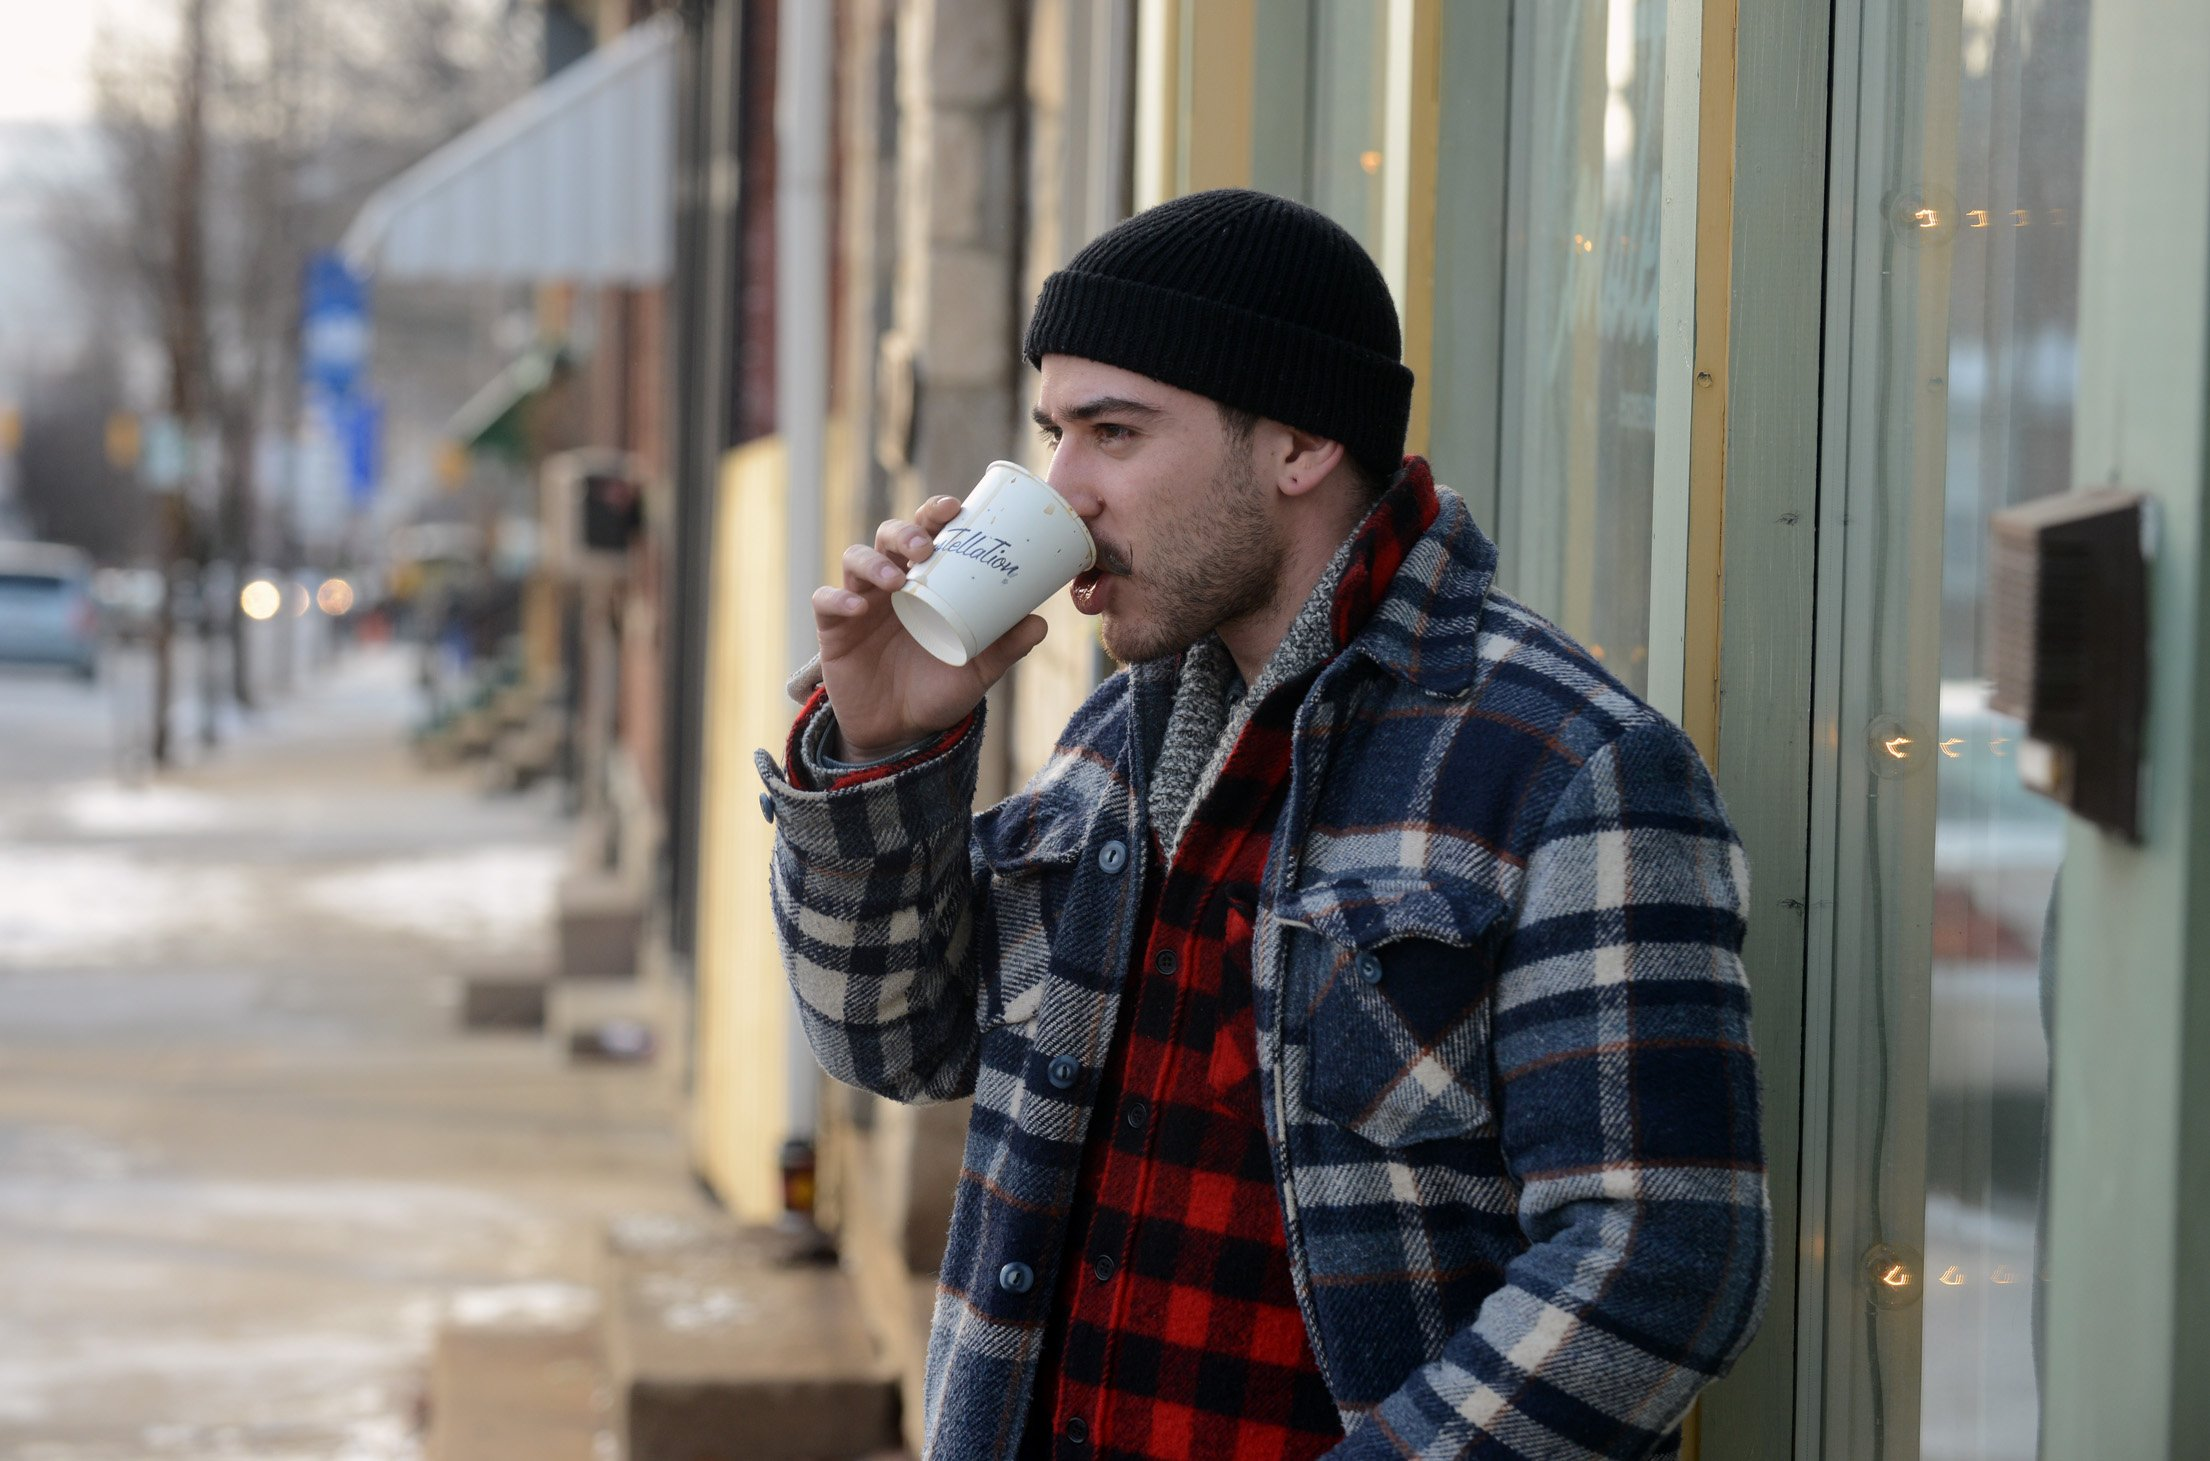 Daniel Gurwin of Lawrenceville Daniel Gurwin of Lawrenceville drinks coffee outside Constellation Coffee in Bloomfield on Penn Avenue.